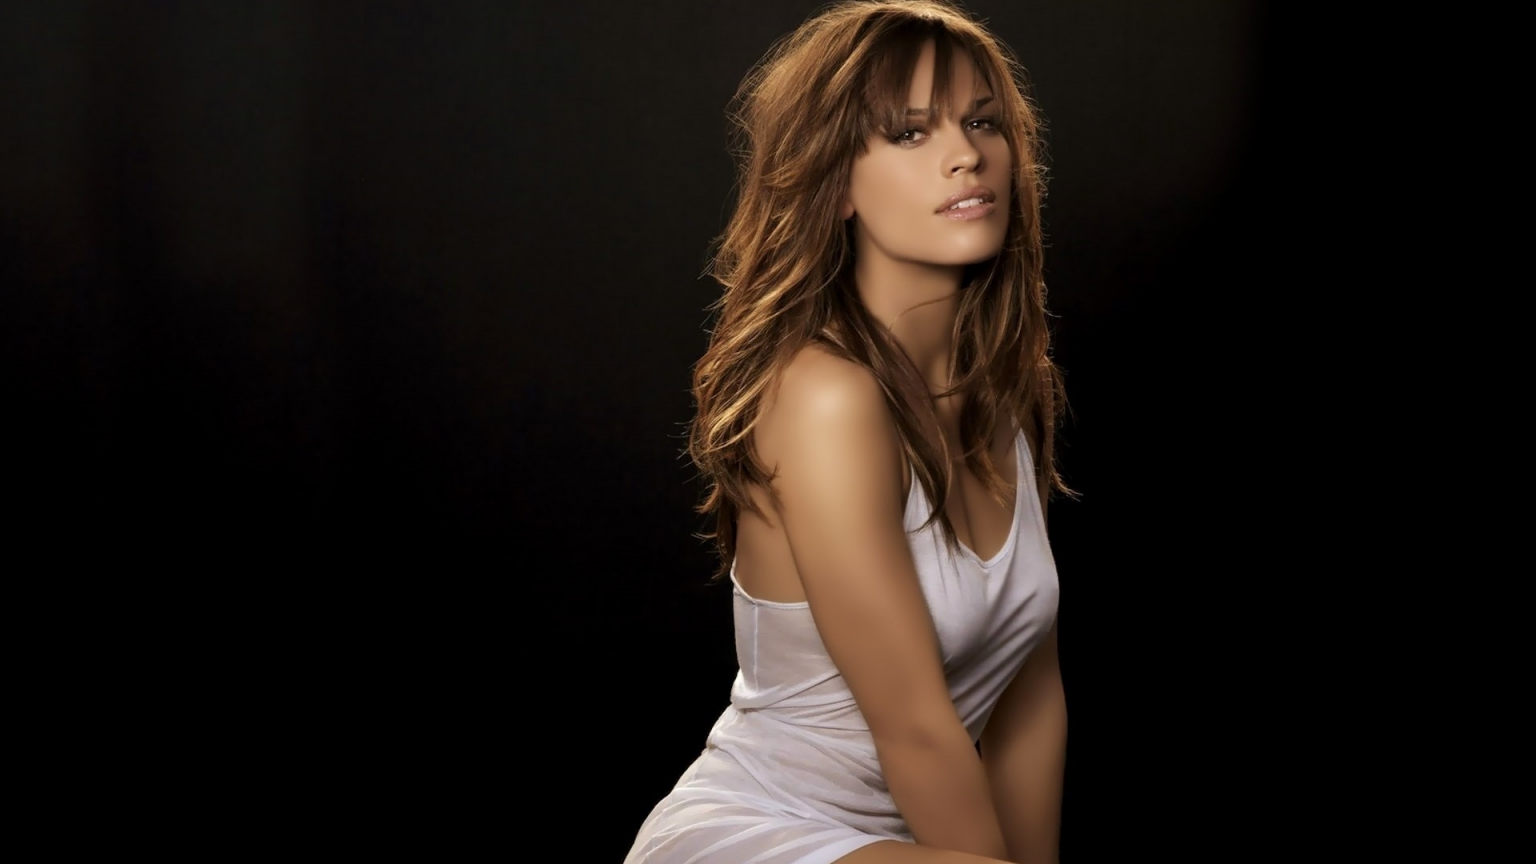 Splendid Hilary Swank for 1536 x 864 HDTV resolution